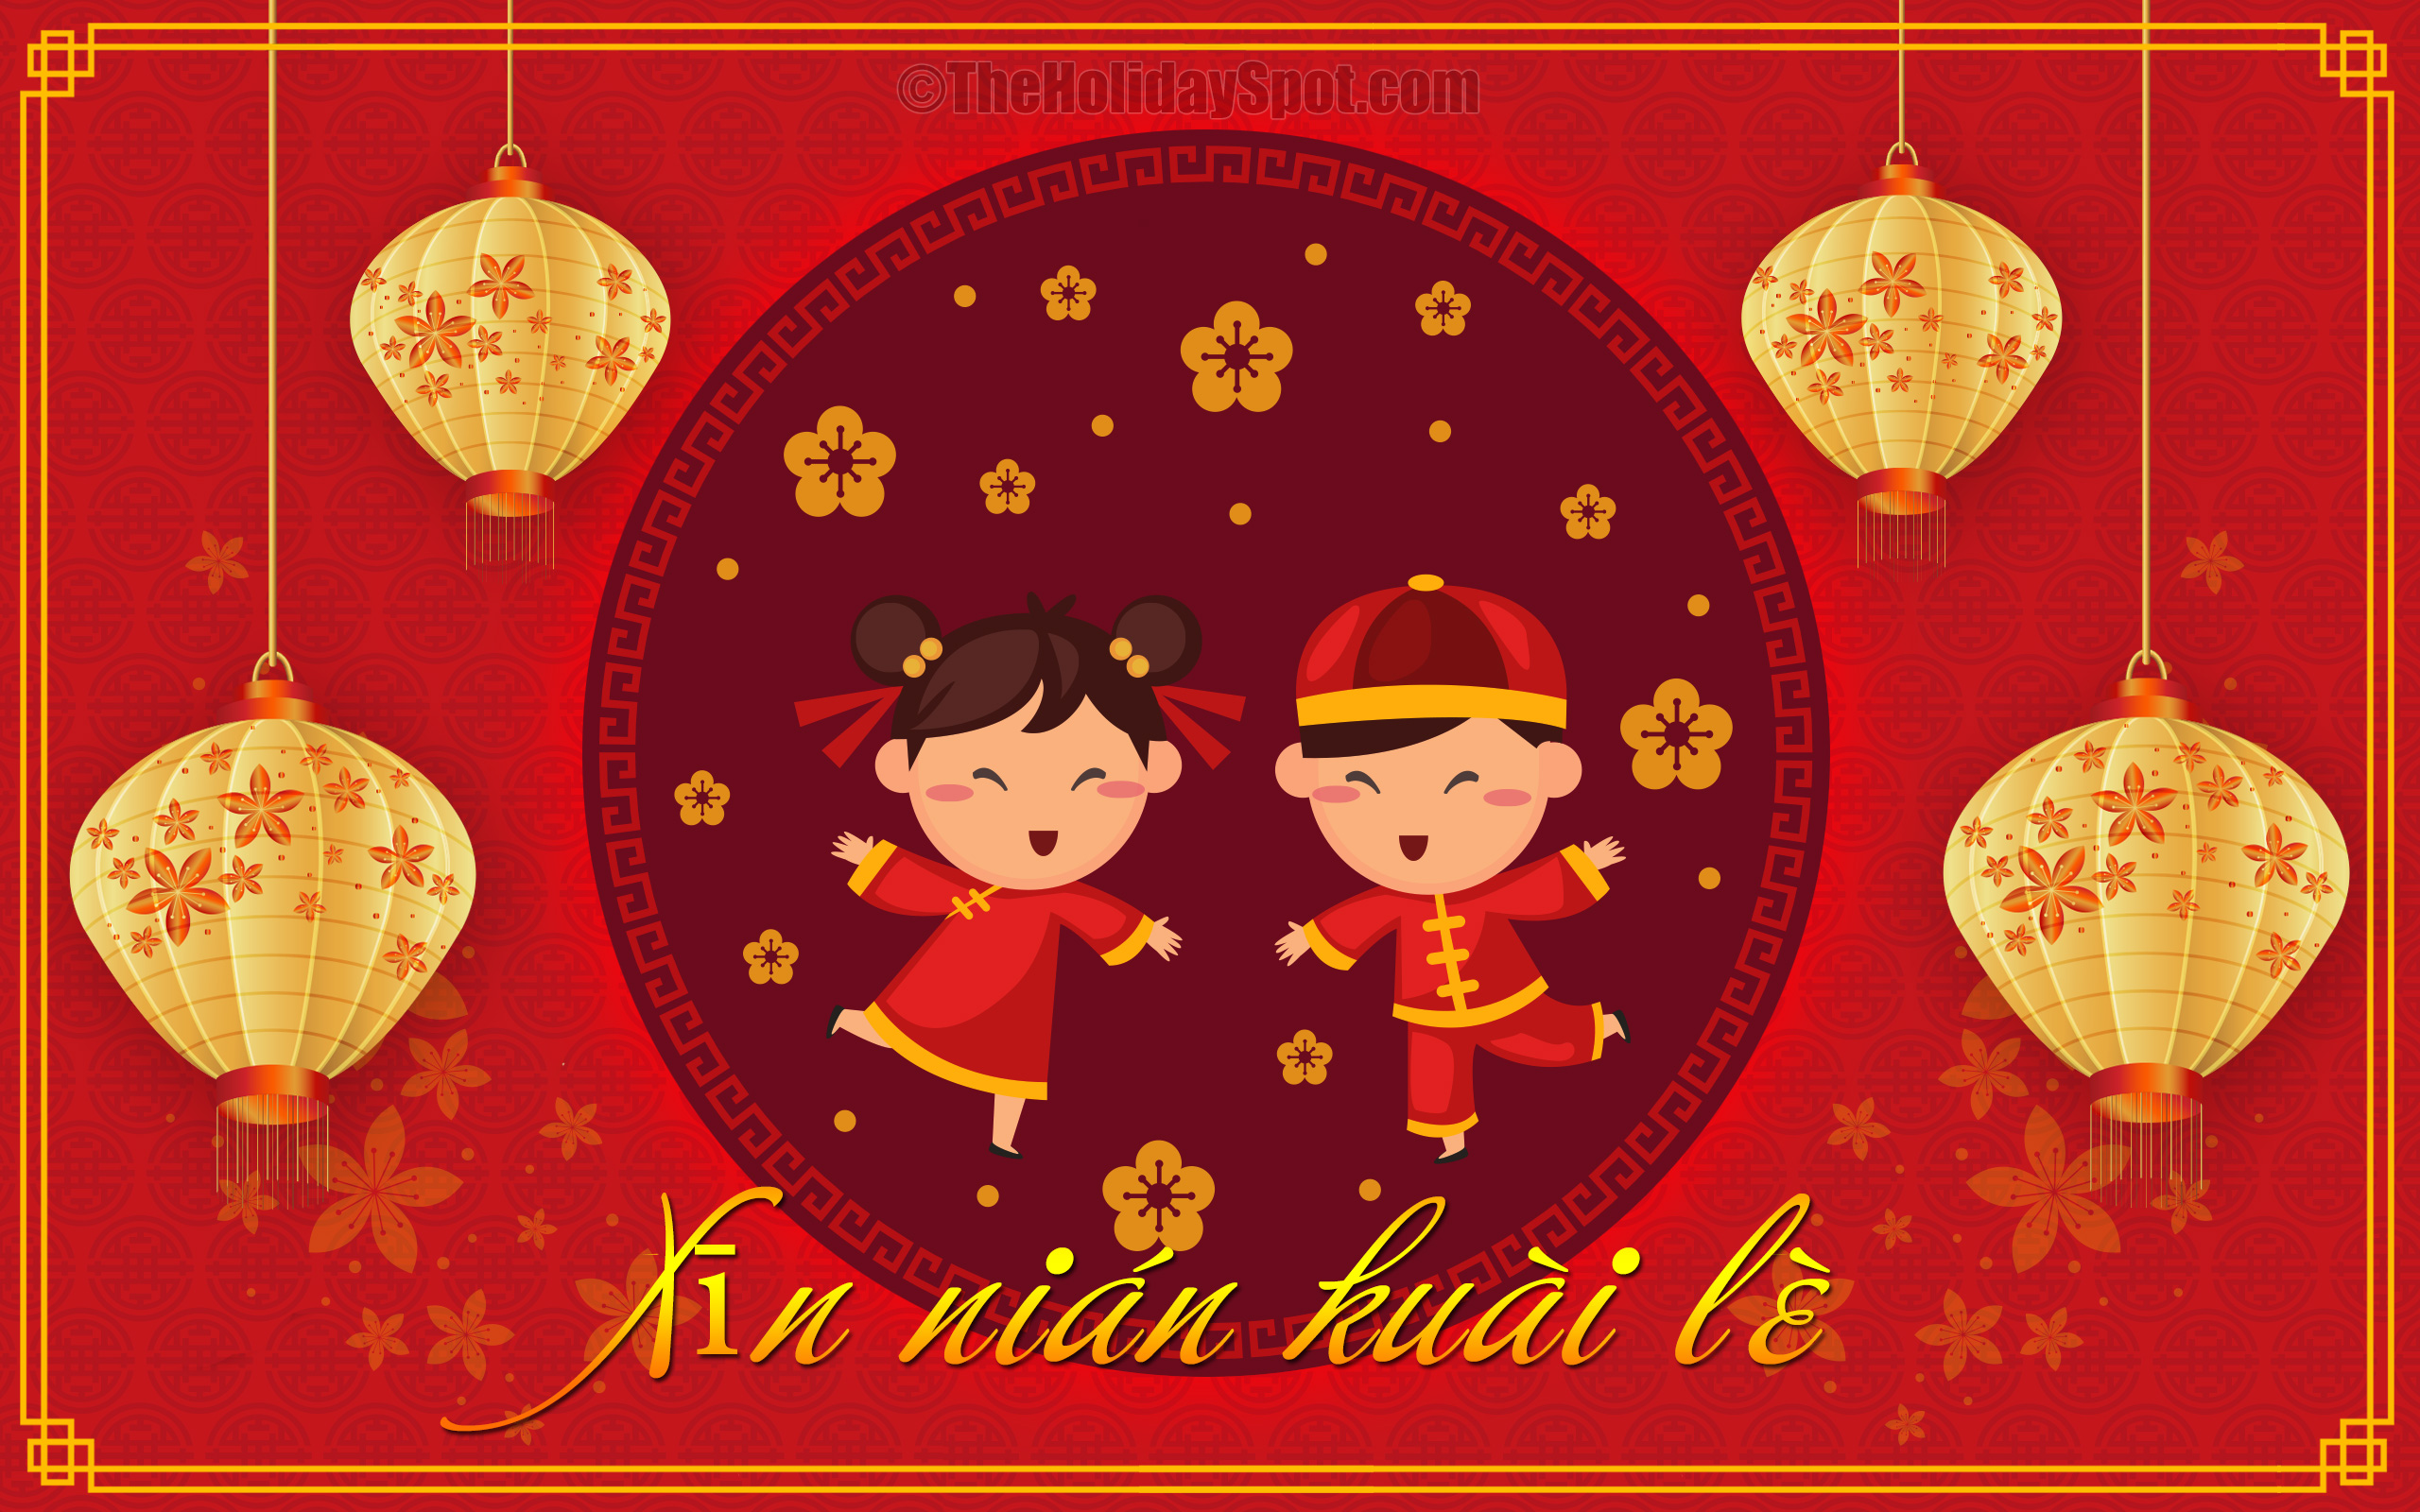 Chinese New Year Wallpapers (31 images) - DodoWallpaper.